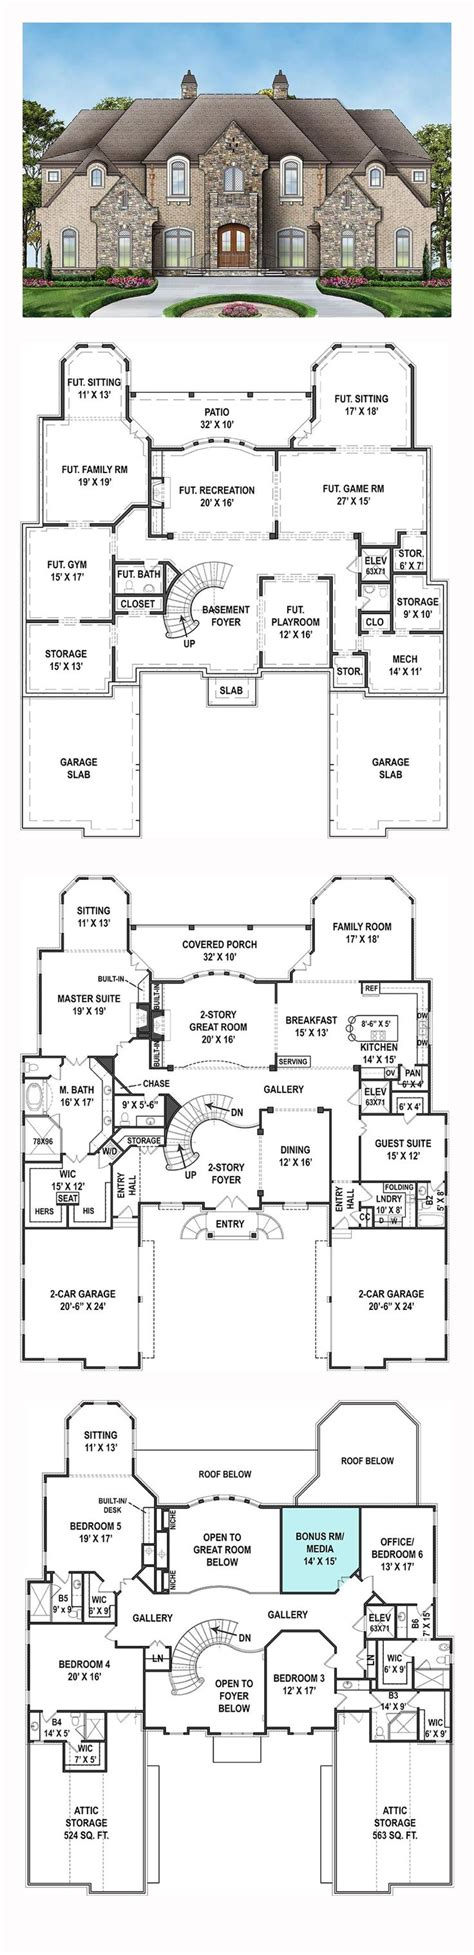 4 family house plans best 25 family house plans ideas on pinterest sims 3